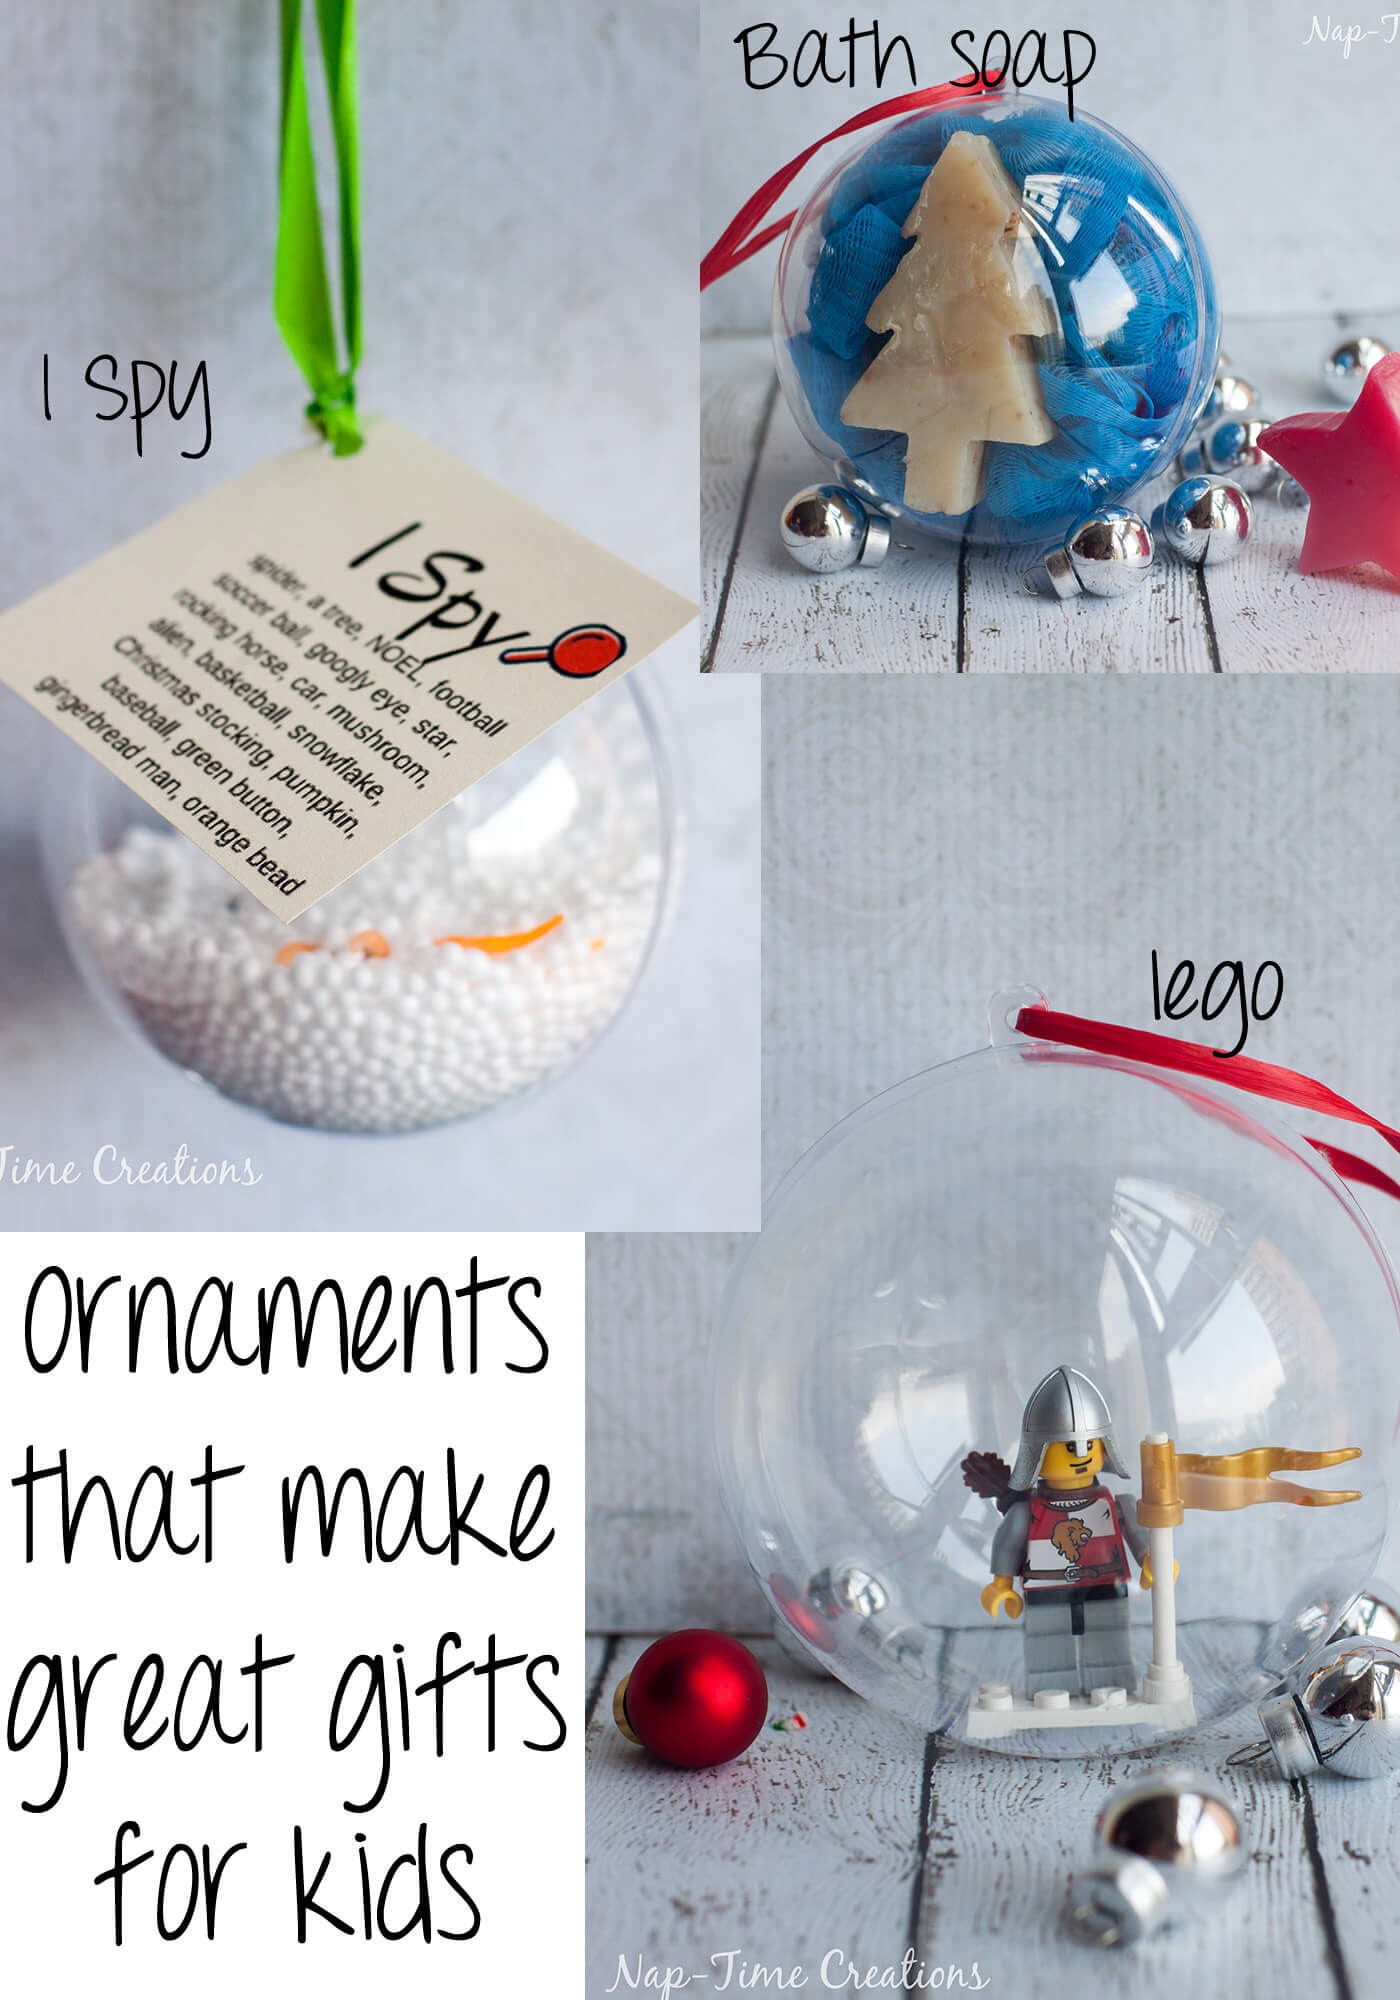 ornaments for kids that make great gifts from Nap-Time Creations